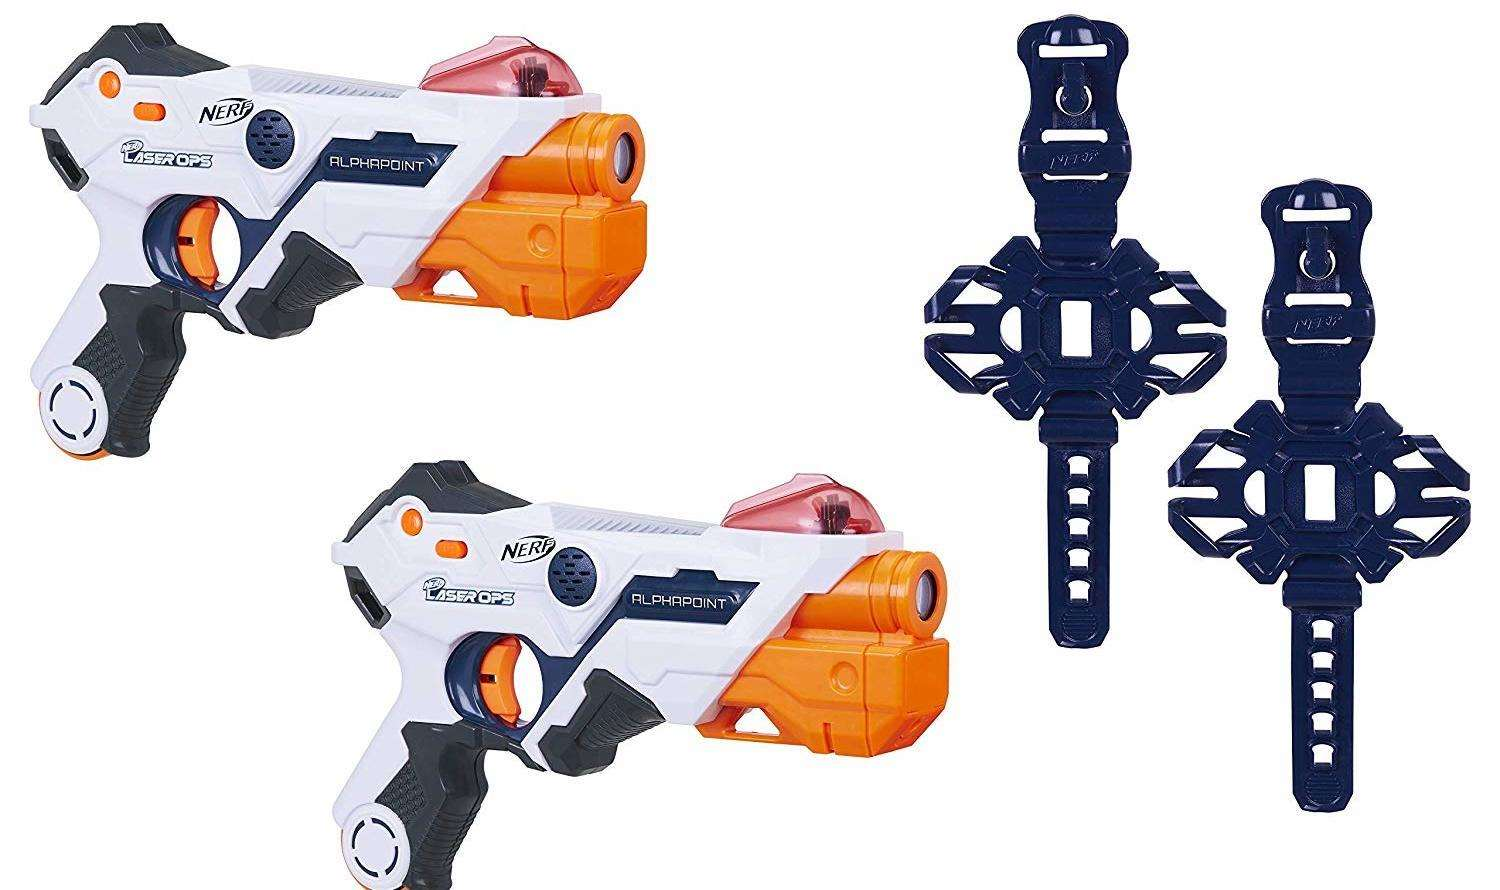 This pack of Nerf Laser Ops Pro Alphapoints is available on Amazon for £44.78 plus free delivery.